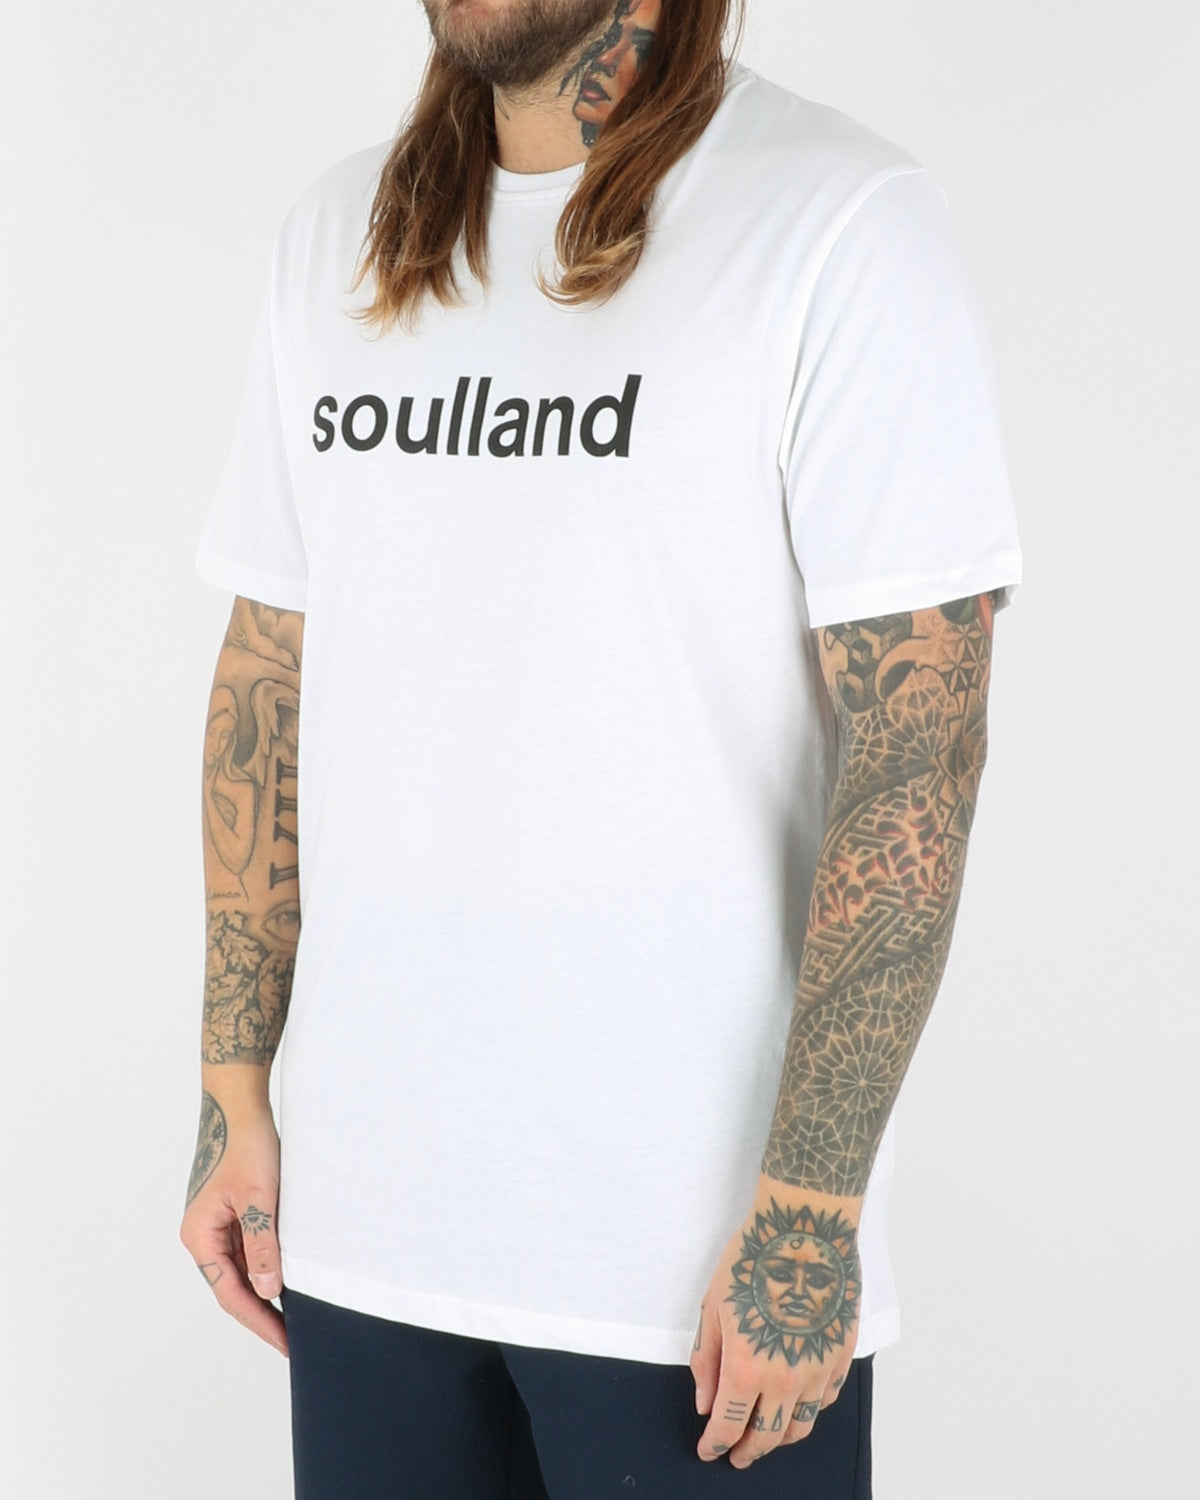 soulland_chuck t-shirt_white_2_3